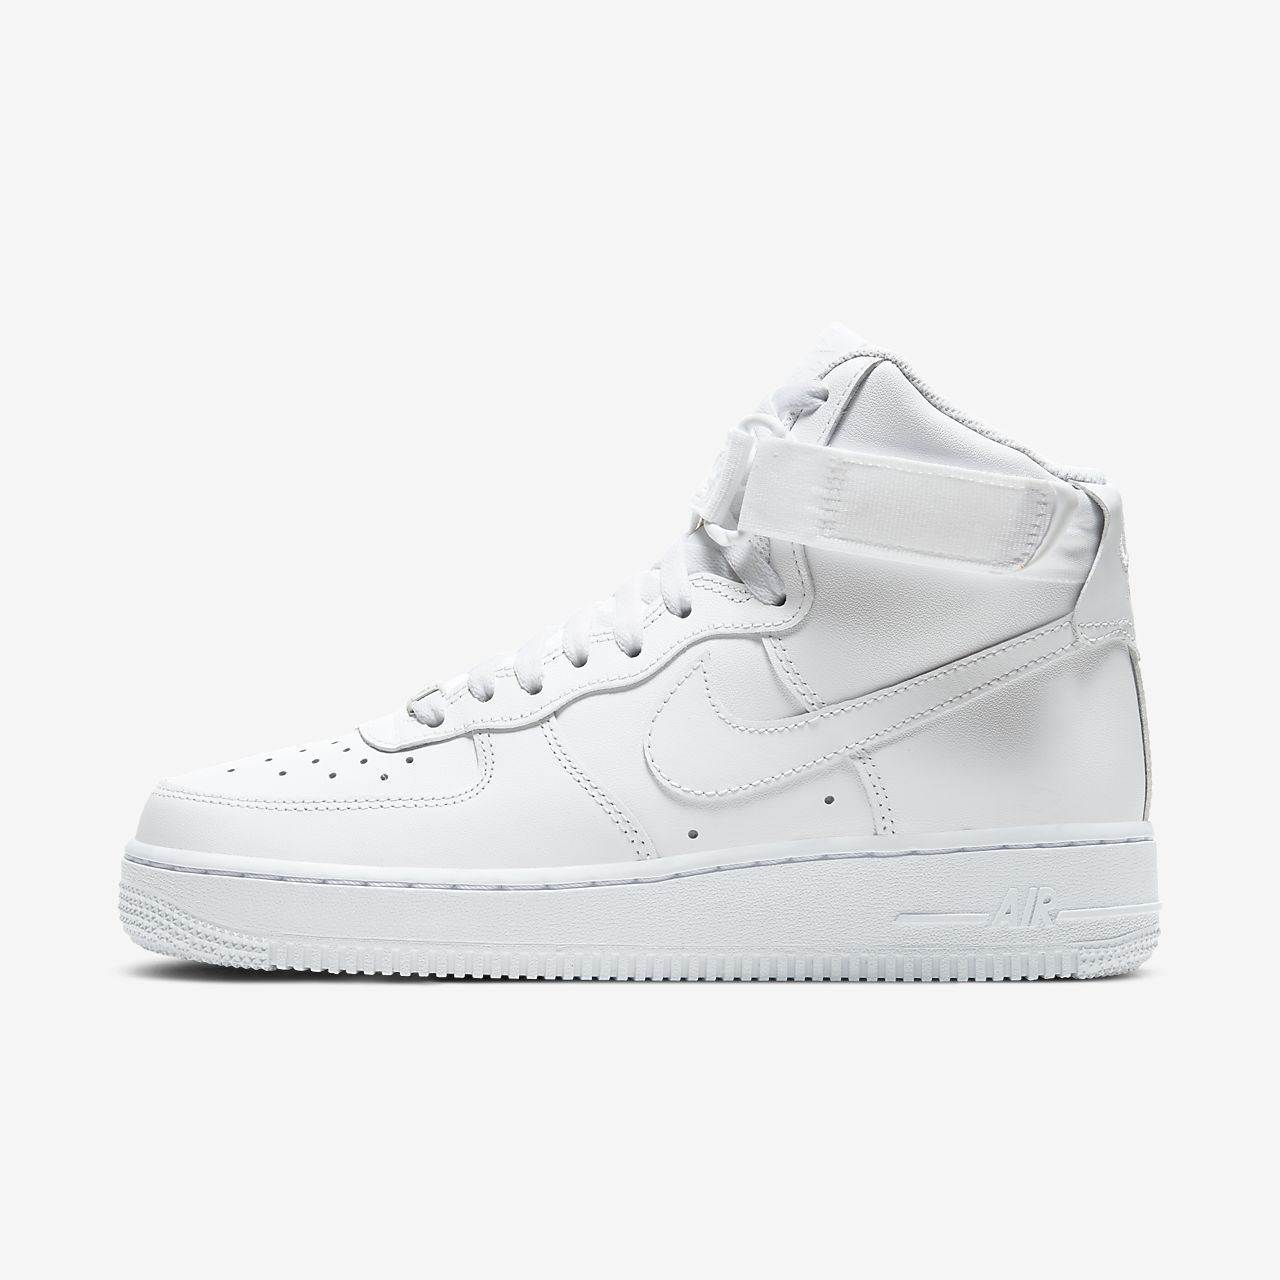 pretty nice 34889 f0fb0 ... Buty damskie Nike Air Force 1 High 08 LE